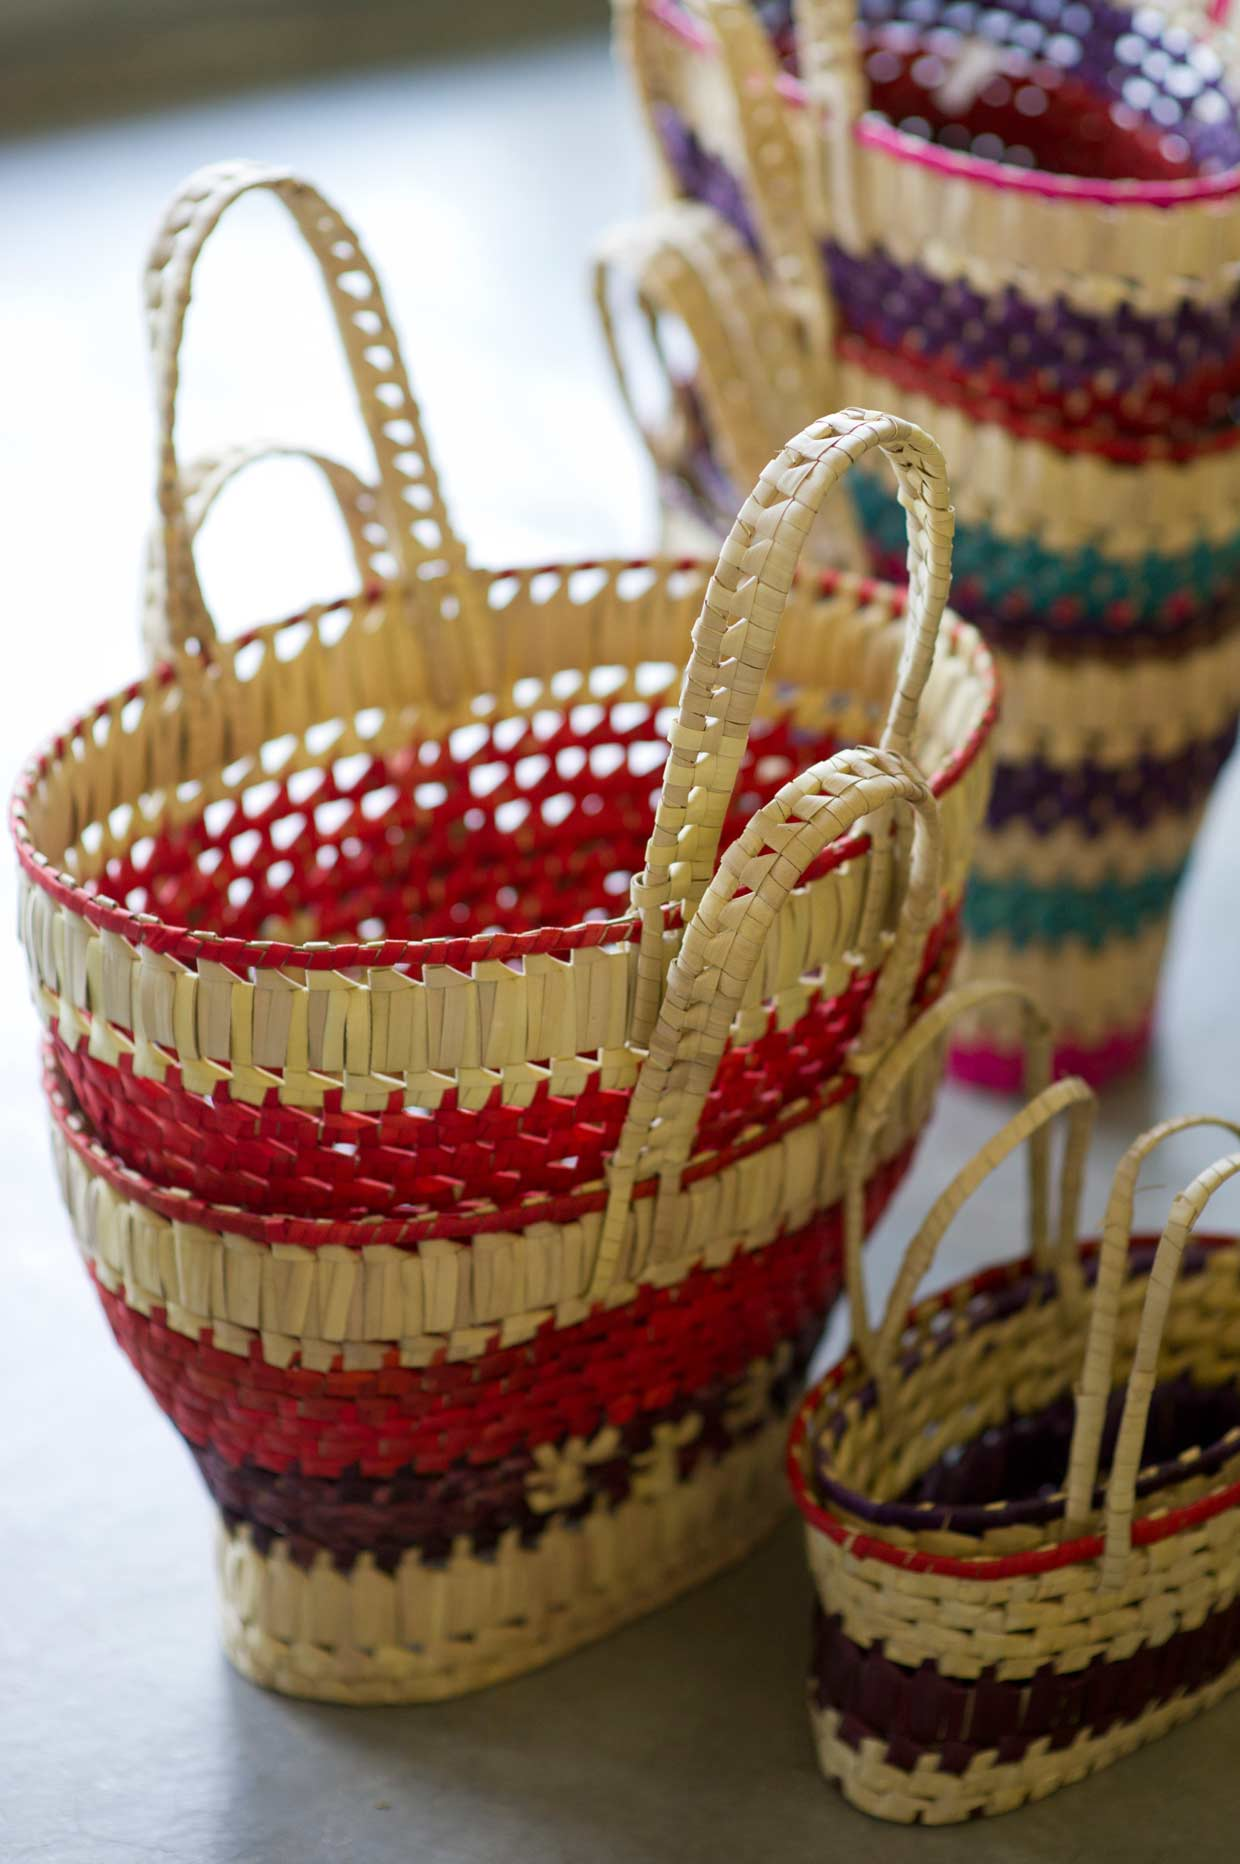 Hand woven baskets come to life through the nimble hands of the young women at the Daskam Nivasa, situated at the School for the Hearing and Visual Impaired in Moneragala. Vocational training gives older students a chance to lead independent lives.